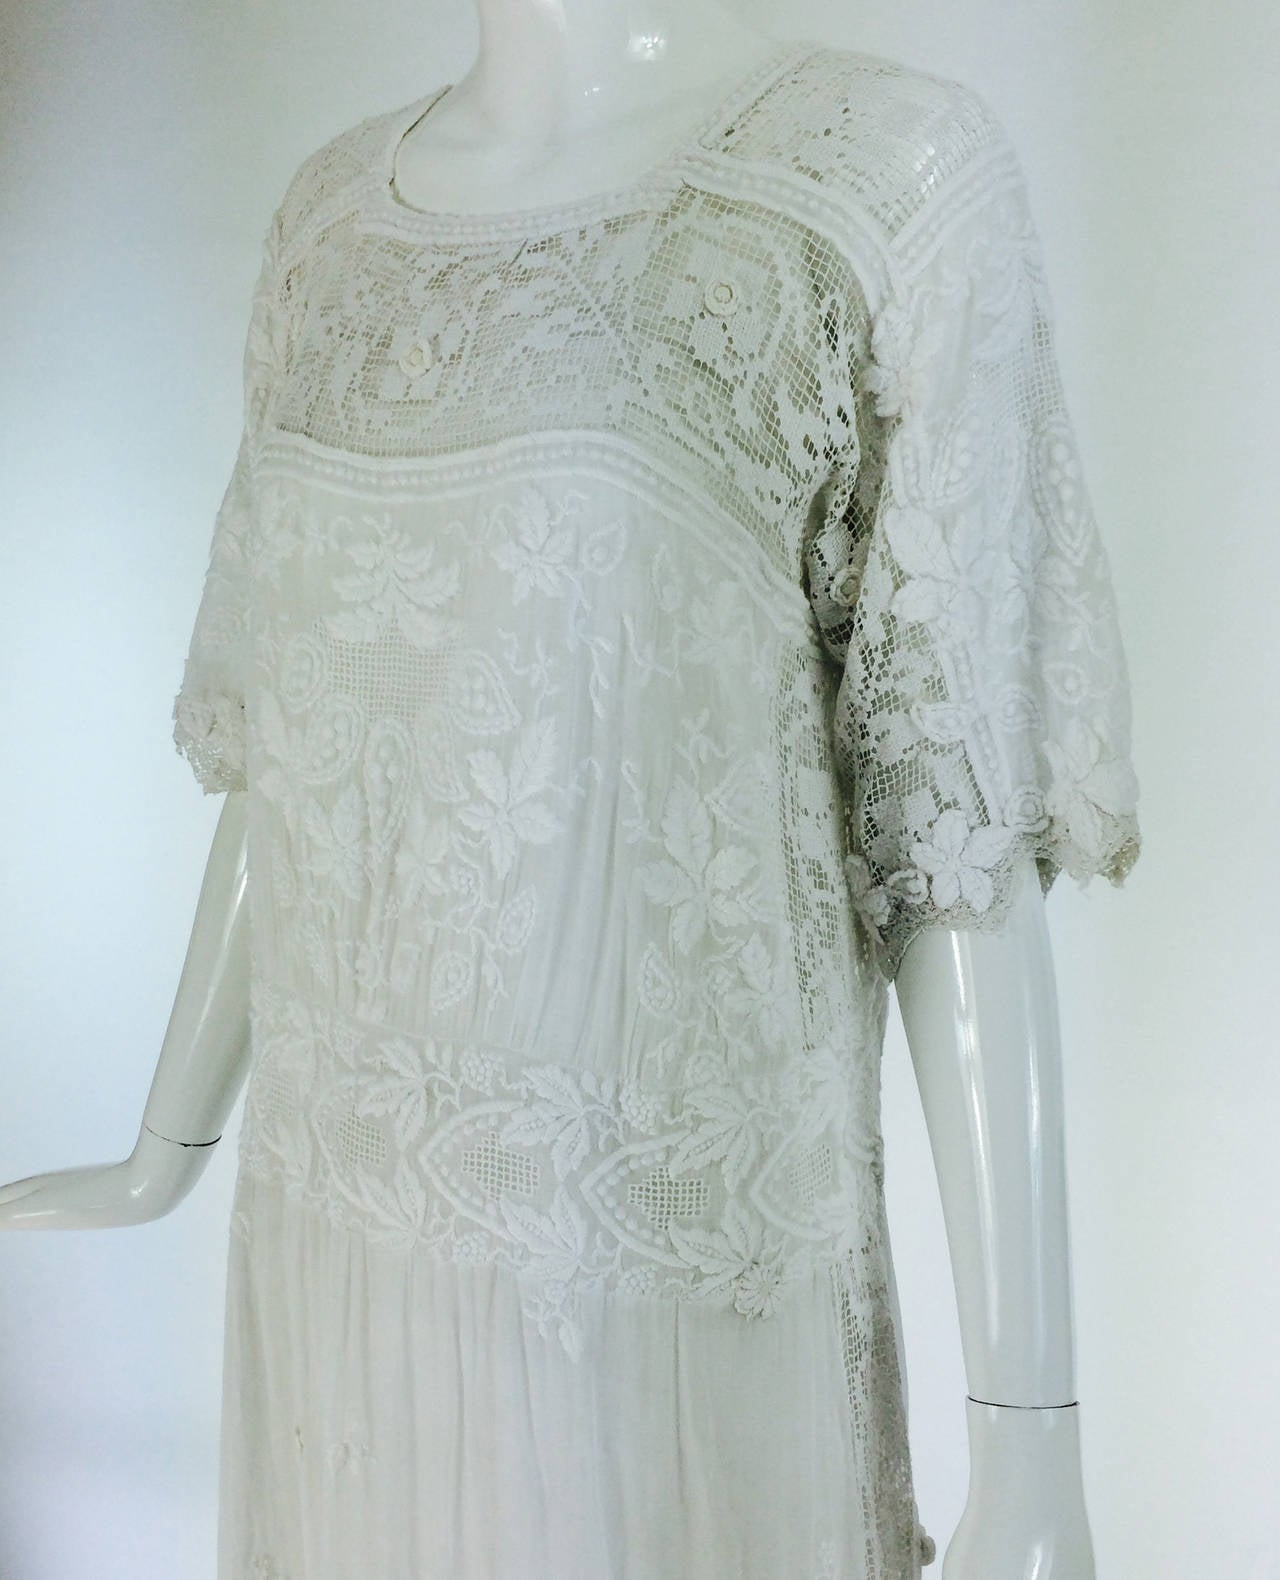 Edwardian embroidered white batiste & handmade lace dress 2